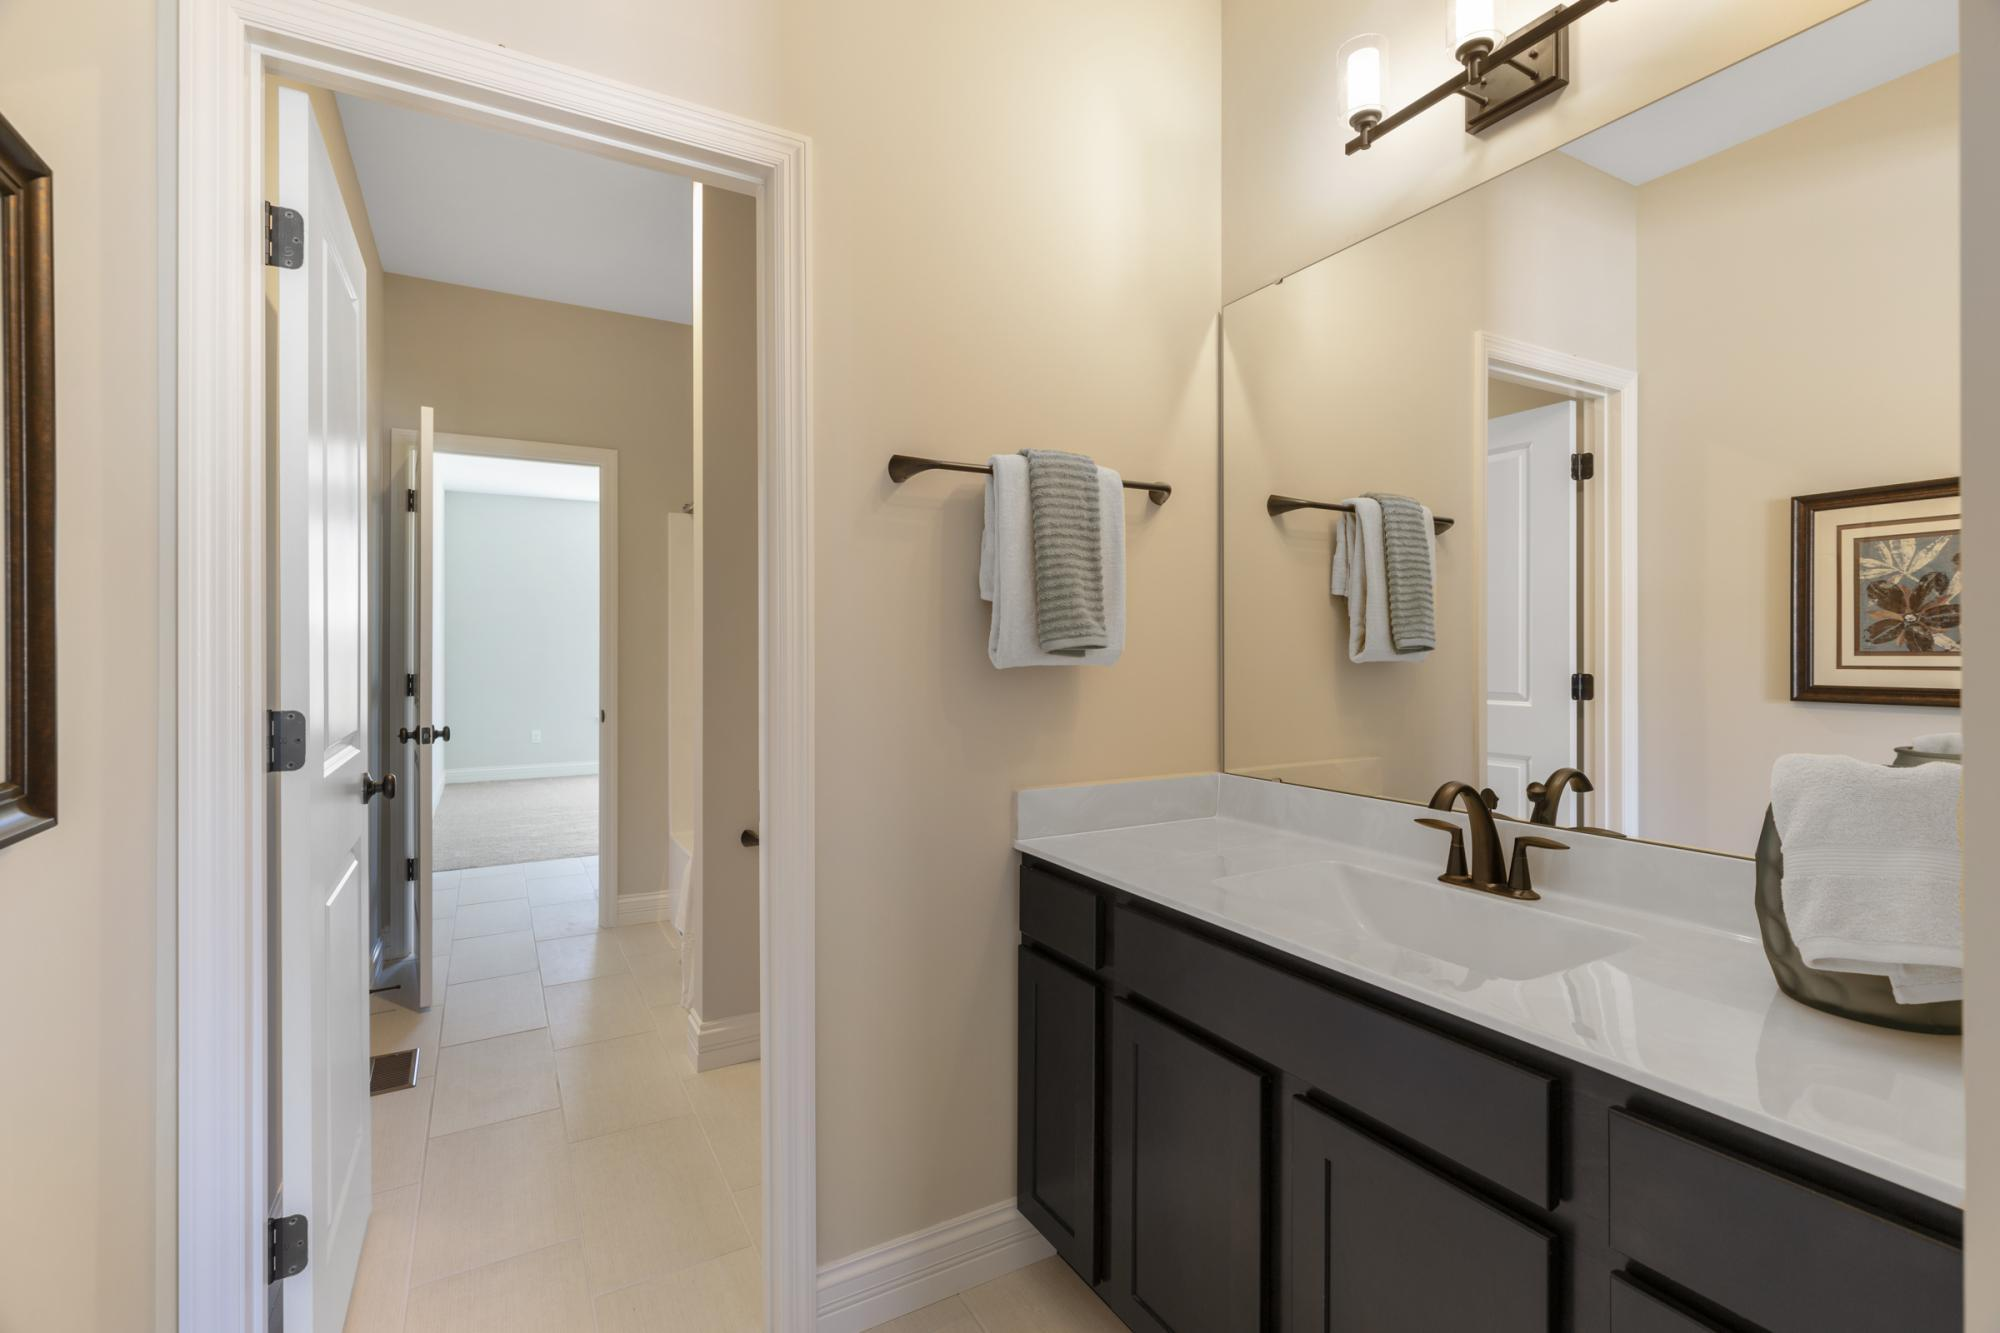 Bathroom featured in the LaSalle By McKelvey Homes in St. Louis, MO